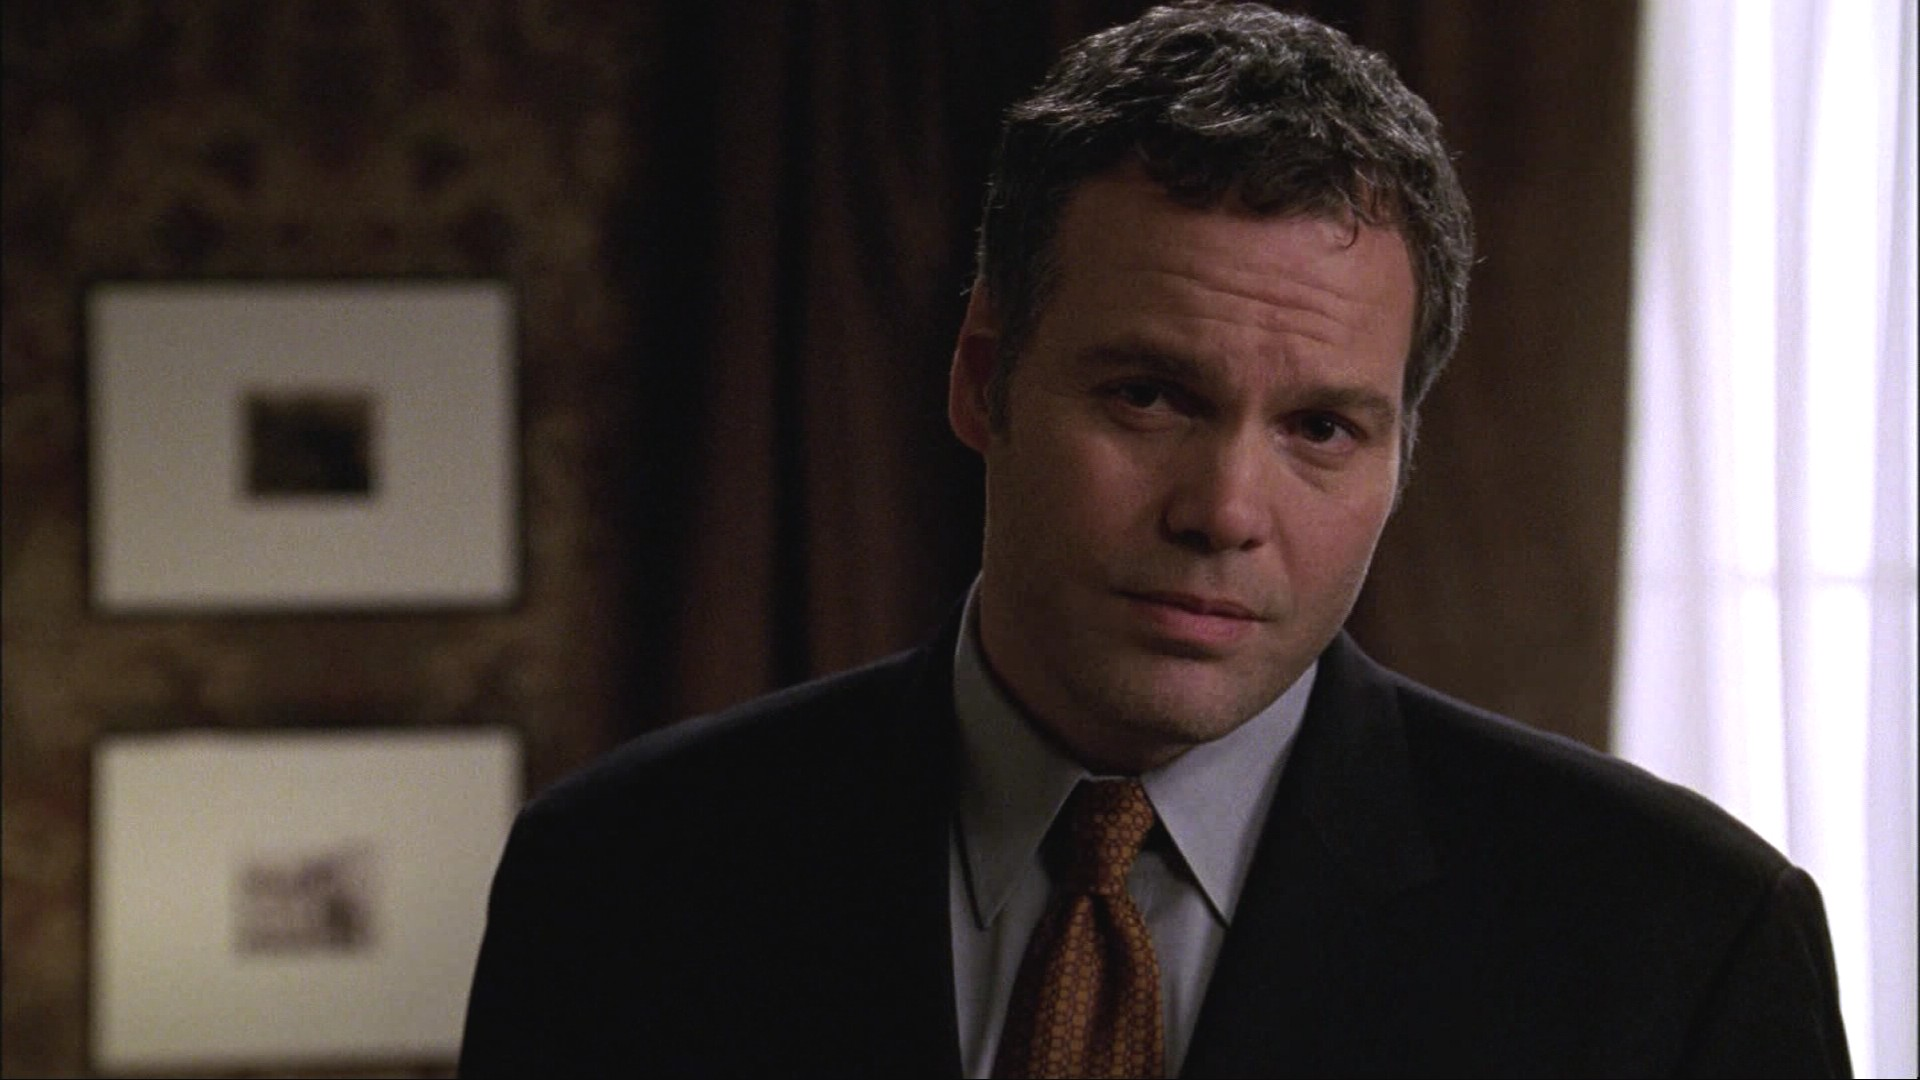 law and order criminal intent anti thesis cast Cast episodes season 9 anti-thesis season 2, episode 3 - air date: 10/13/2002 all law and order: criminal intent articles.